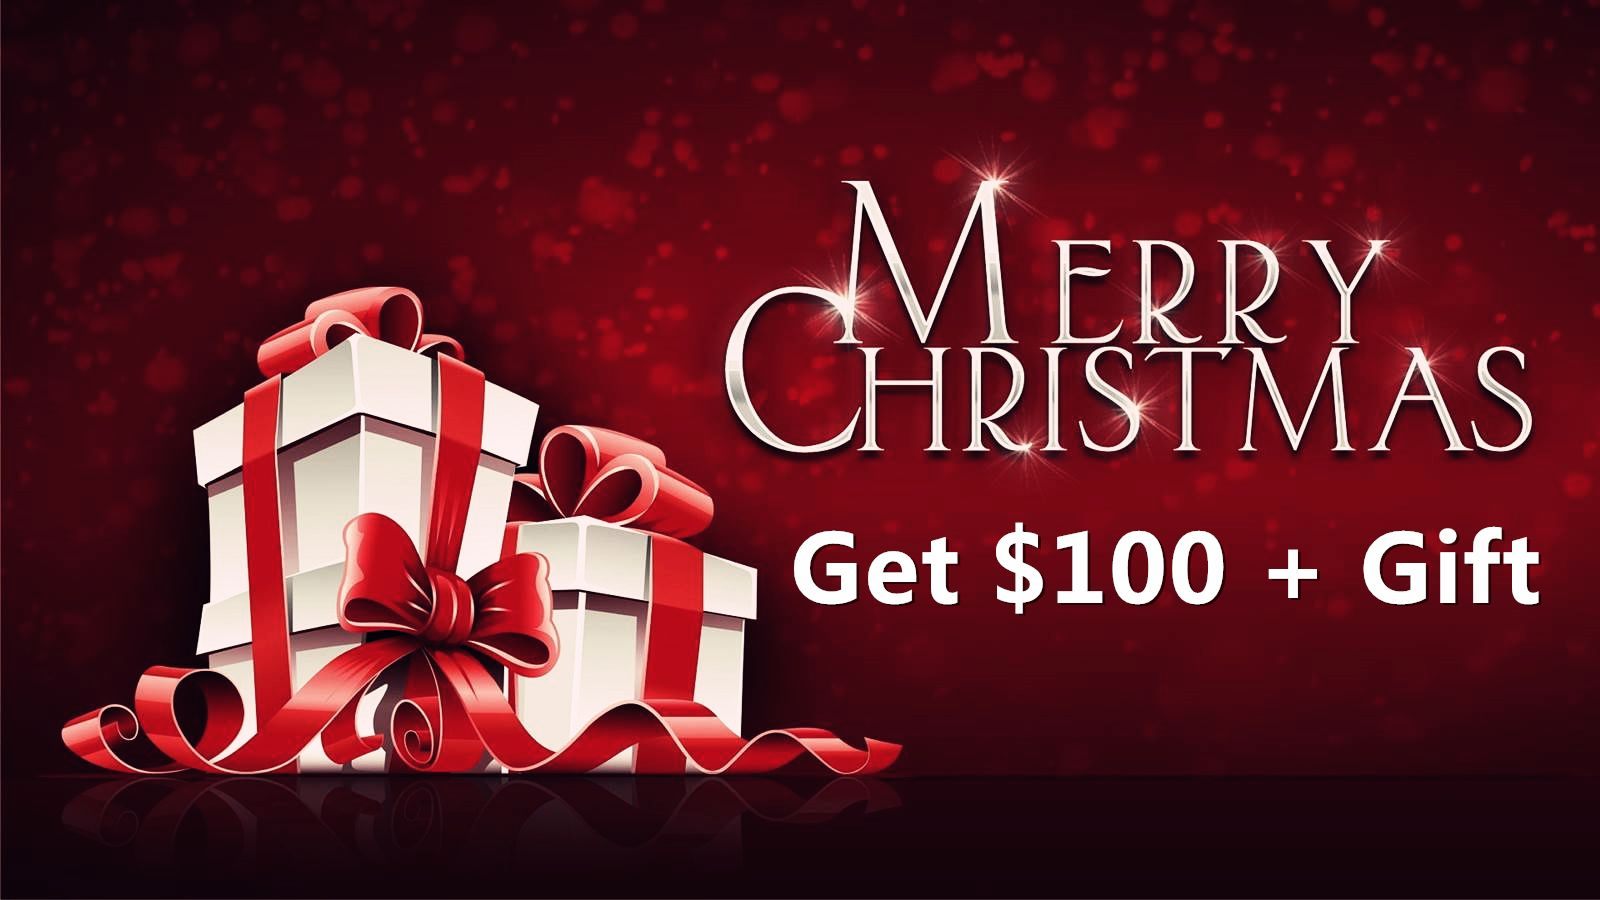 Leave Christmas Wisheswin 100 Fitness Gift Httpiisportnet